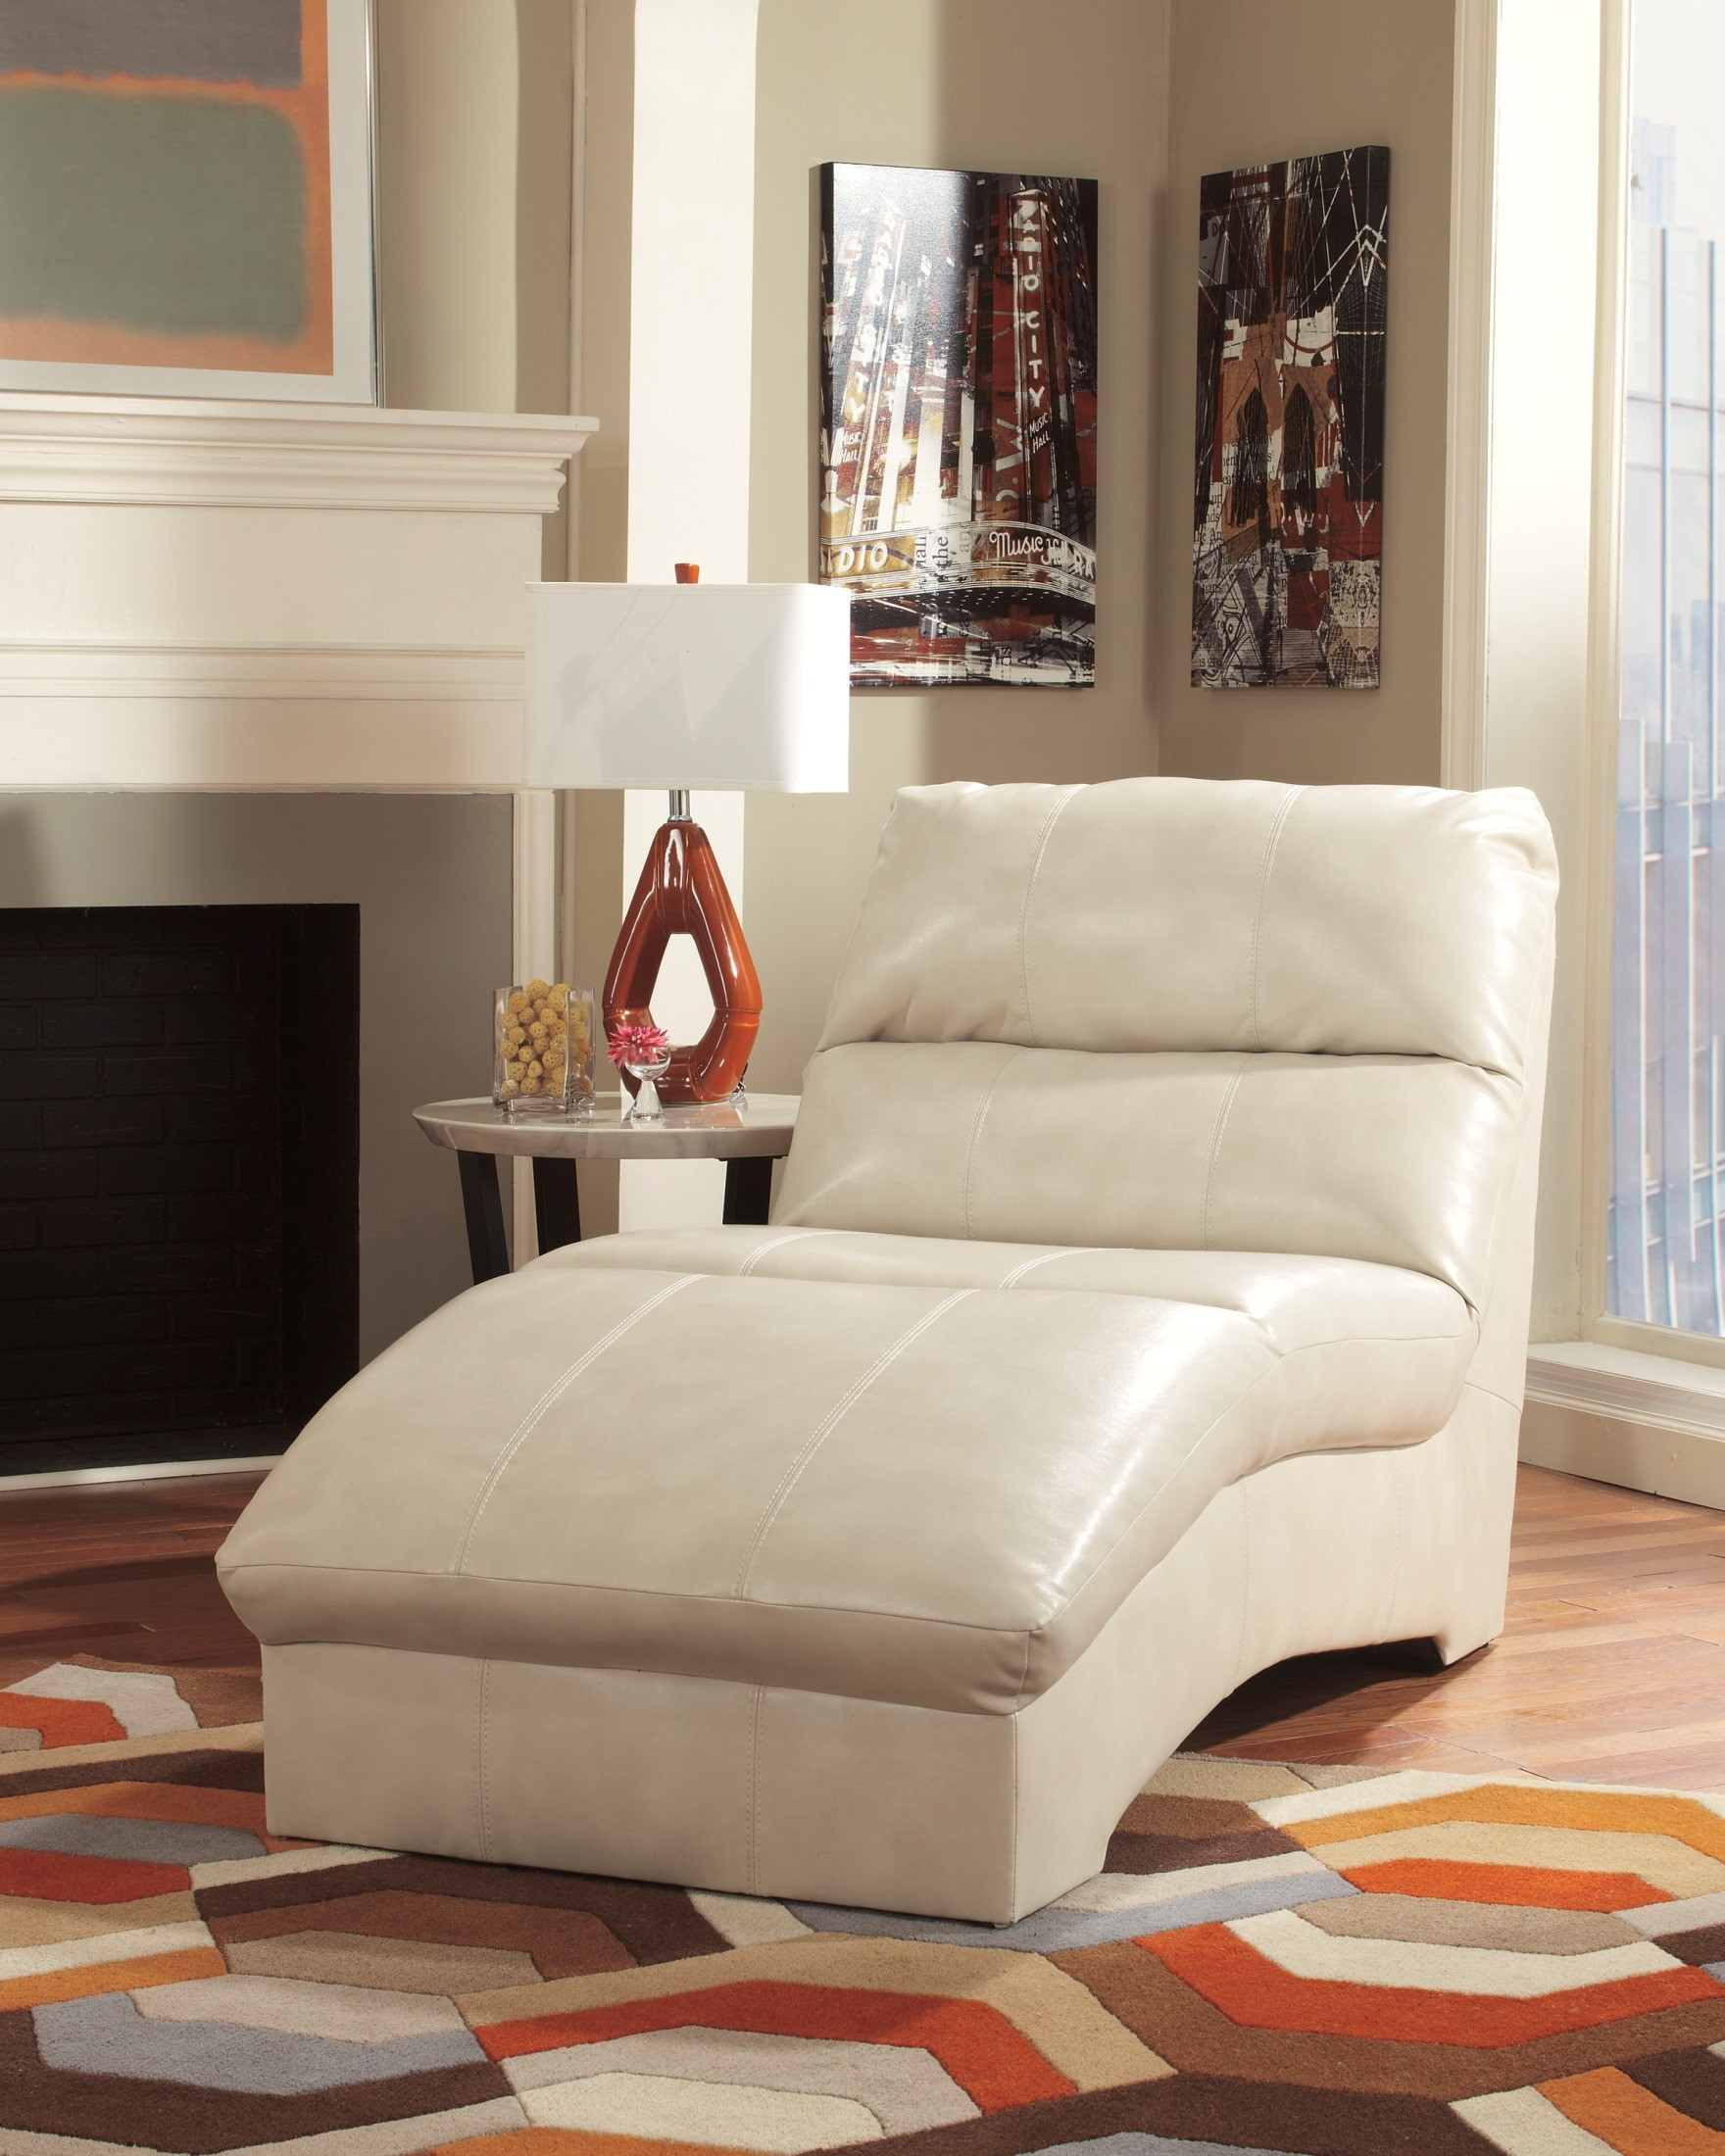 Paulie durablend taupe chaise from ashley 2700015 for Ashley durablend chaise